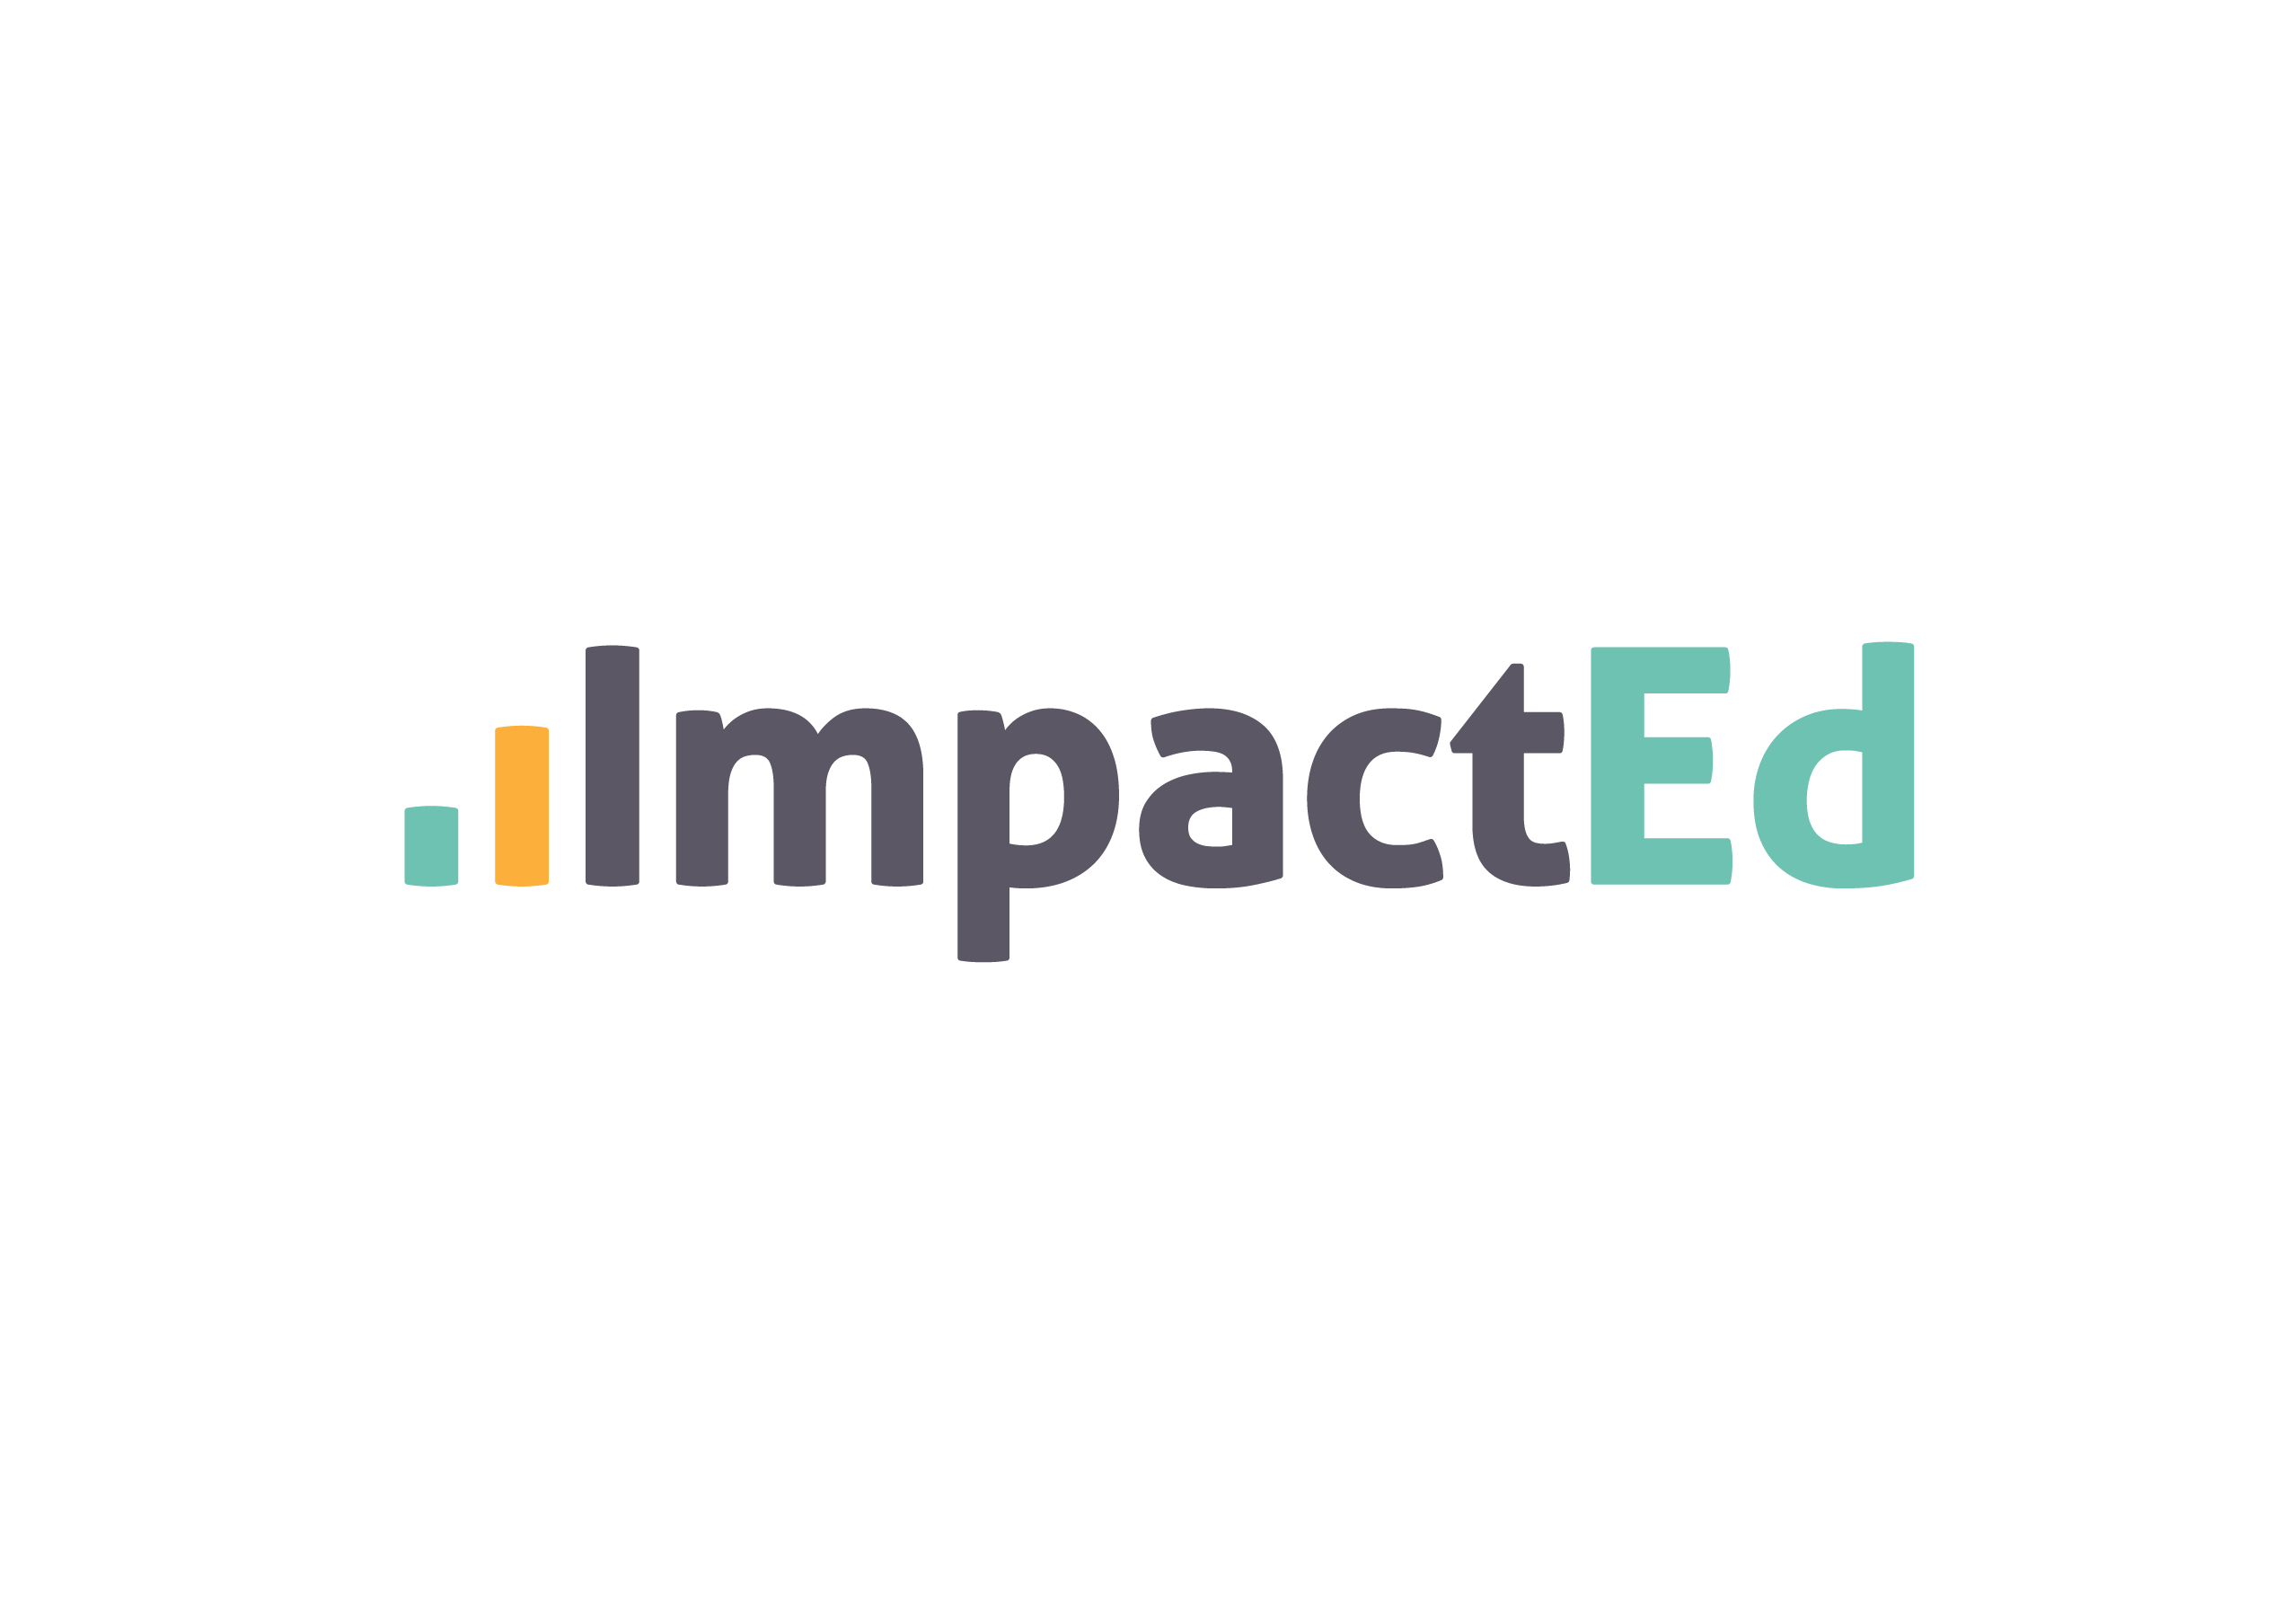 ImpactEd Company Logo